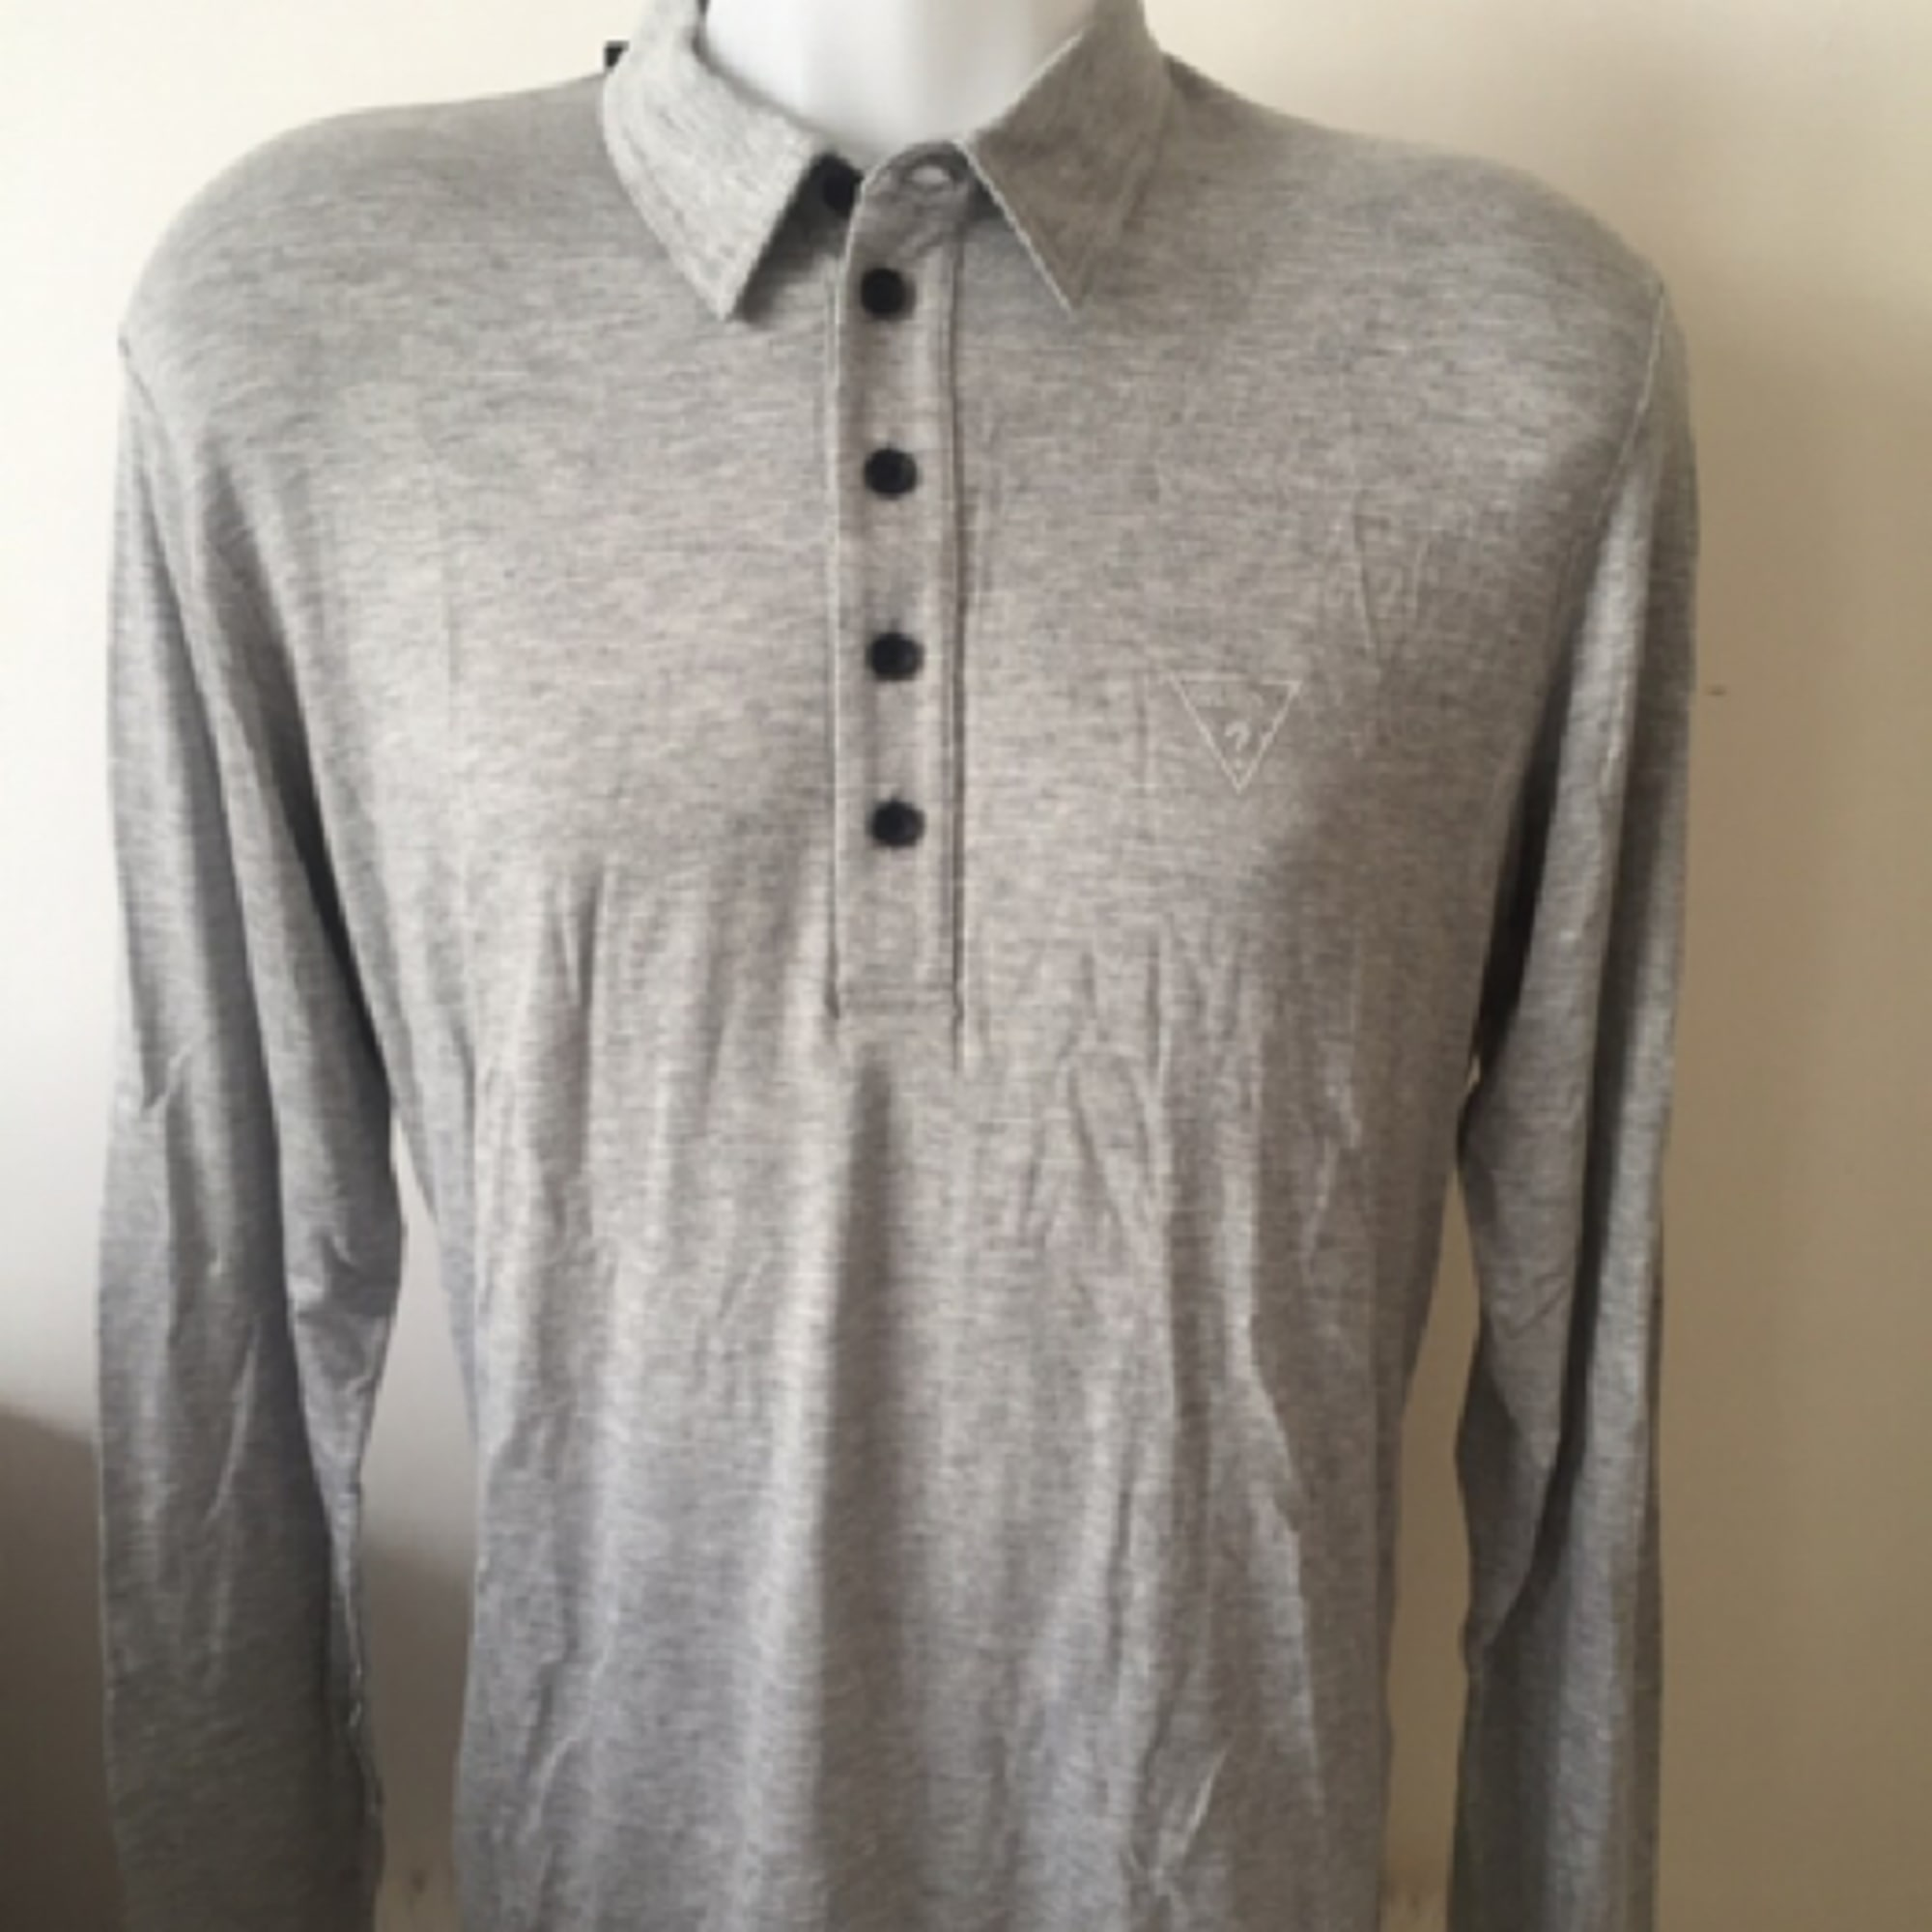 Polo GUESS Gris, anthracite